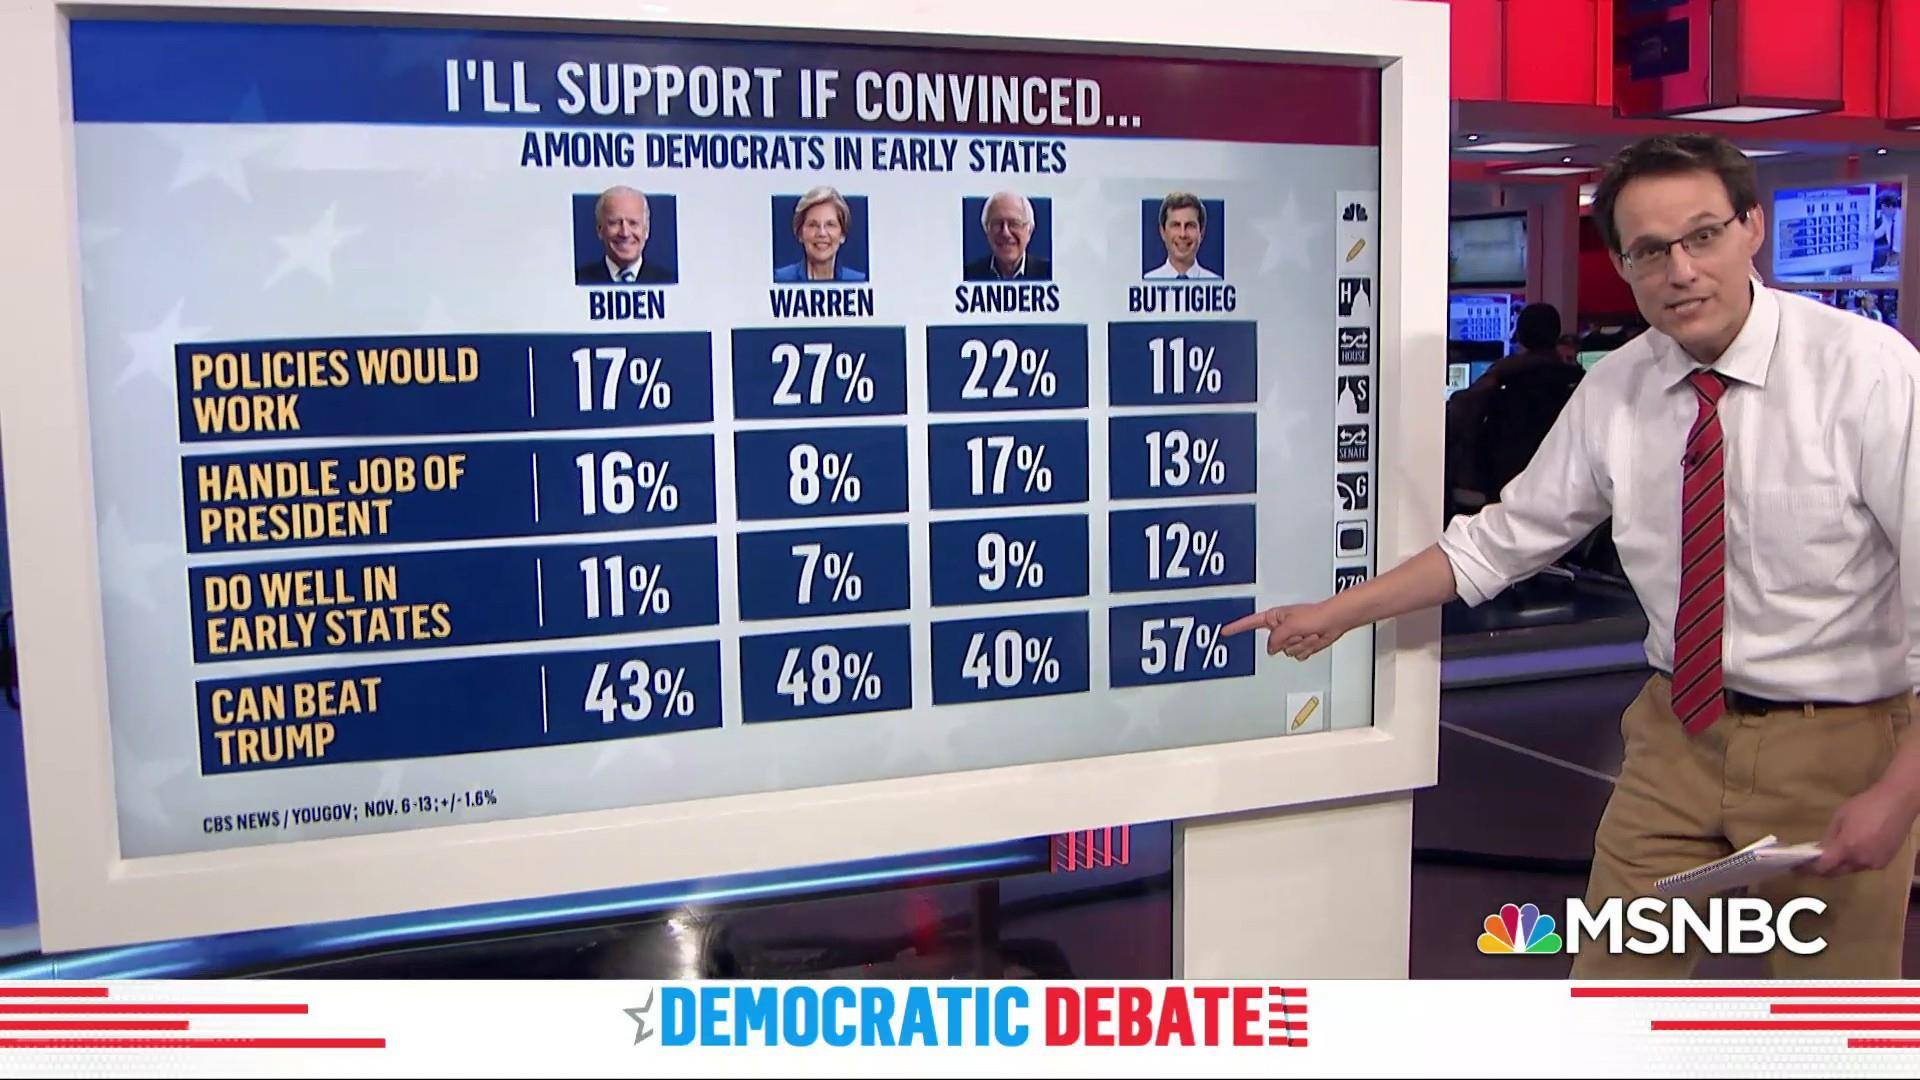 Defeating Donald Trump key to Democratic voter preferences: poll